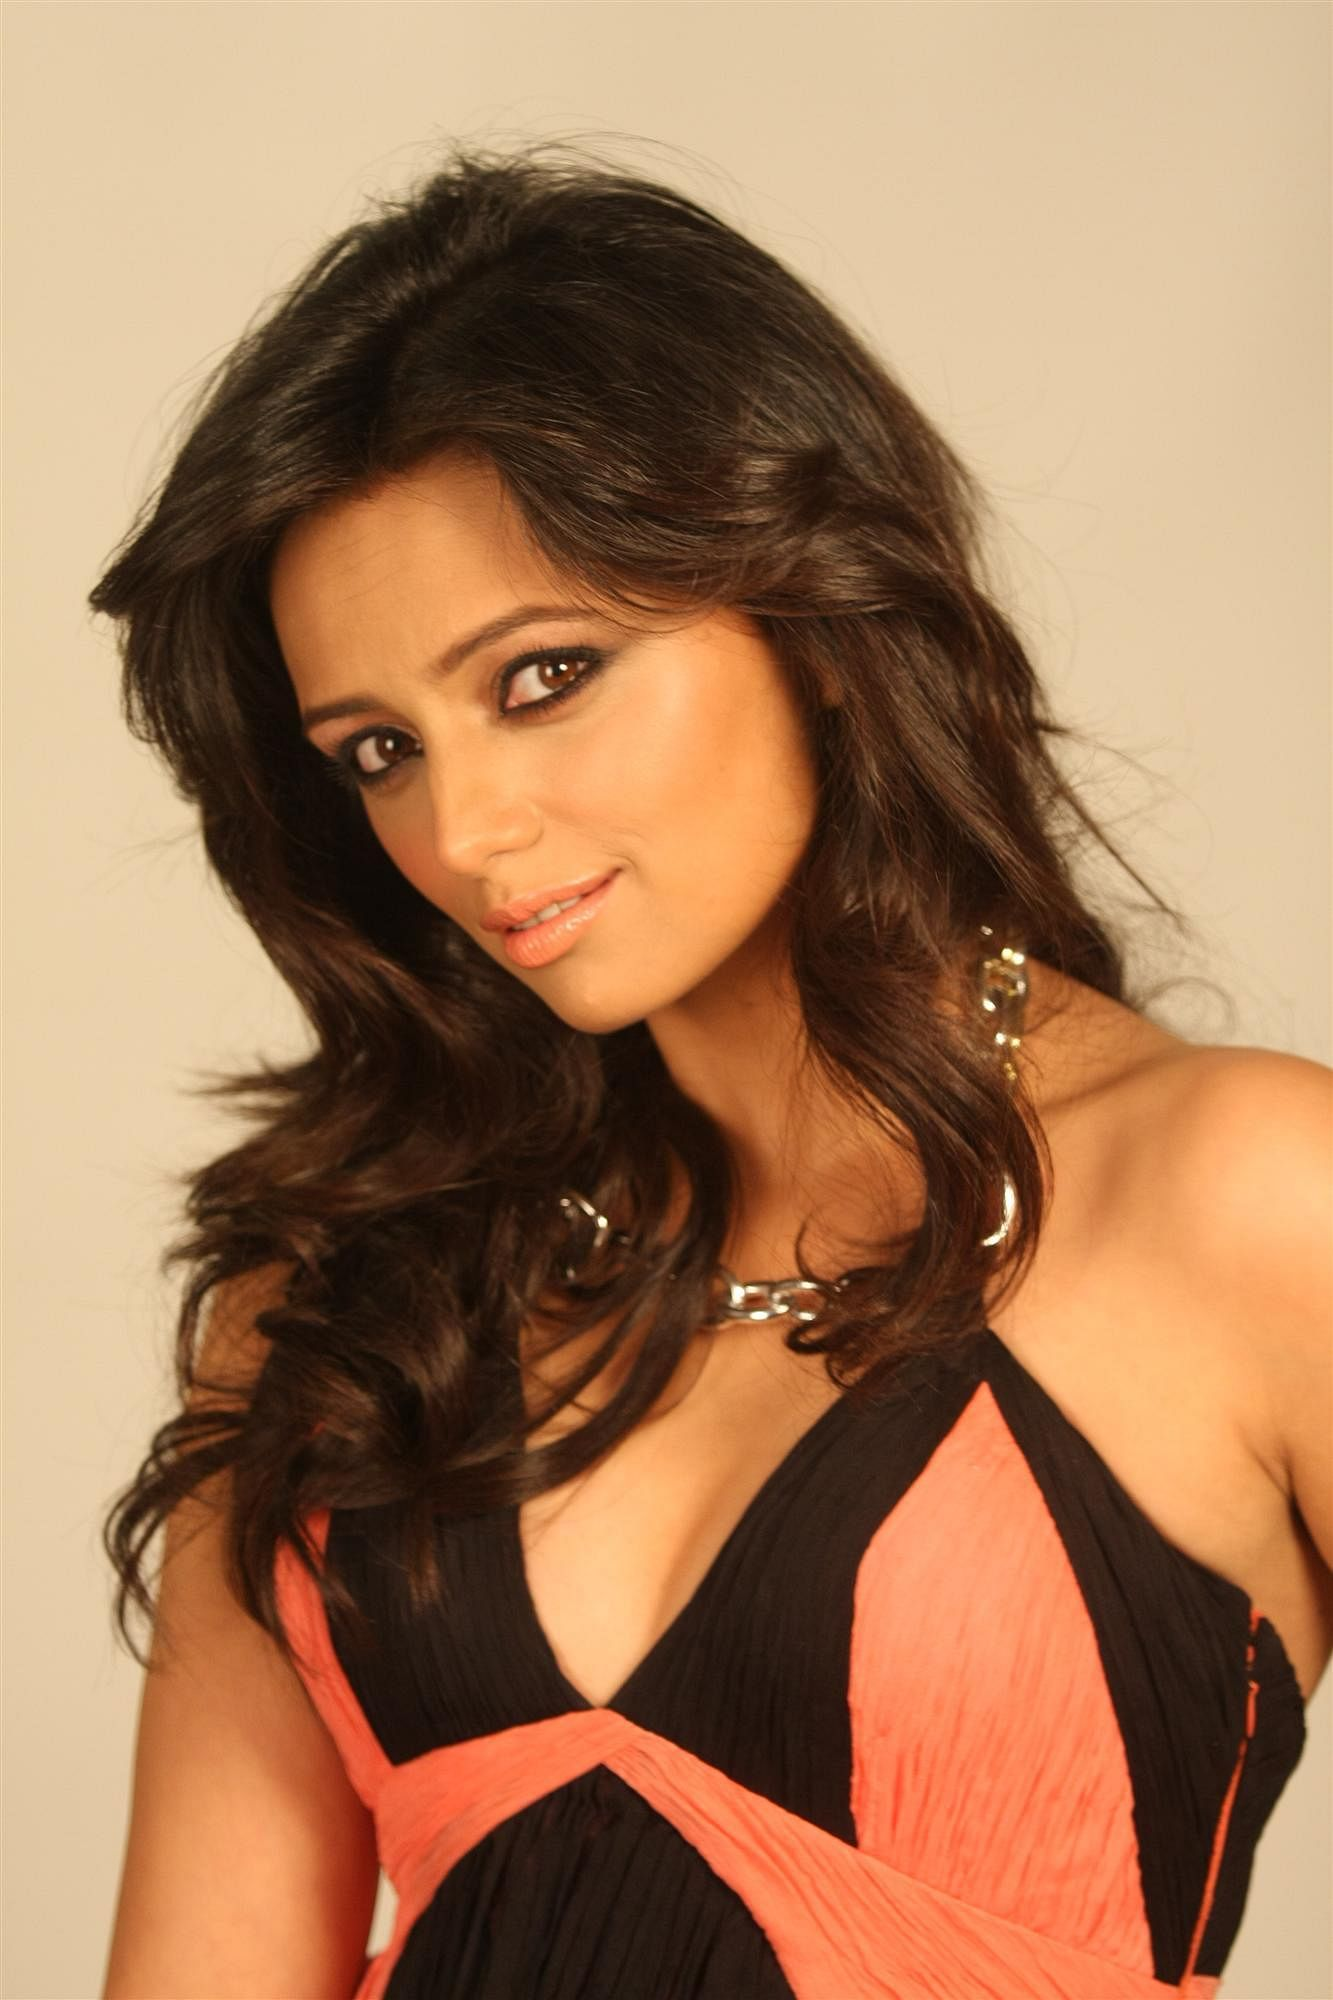 Hottest female anchors in Indian sports